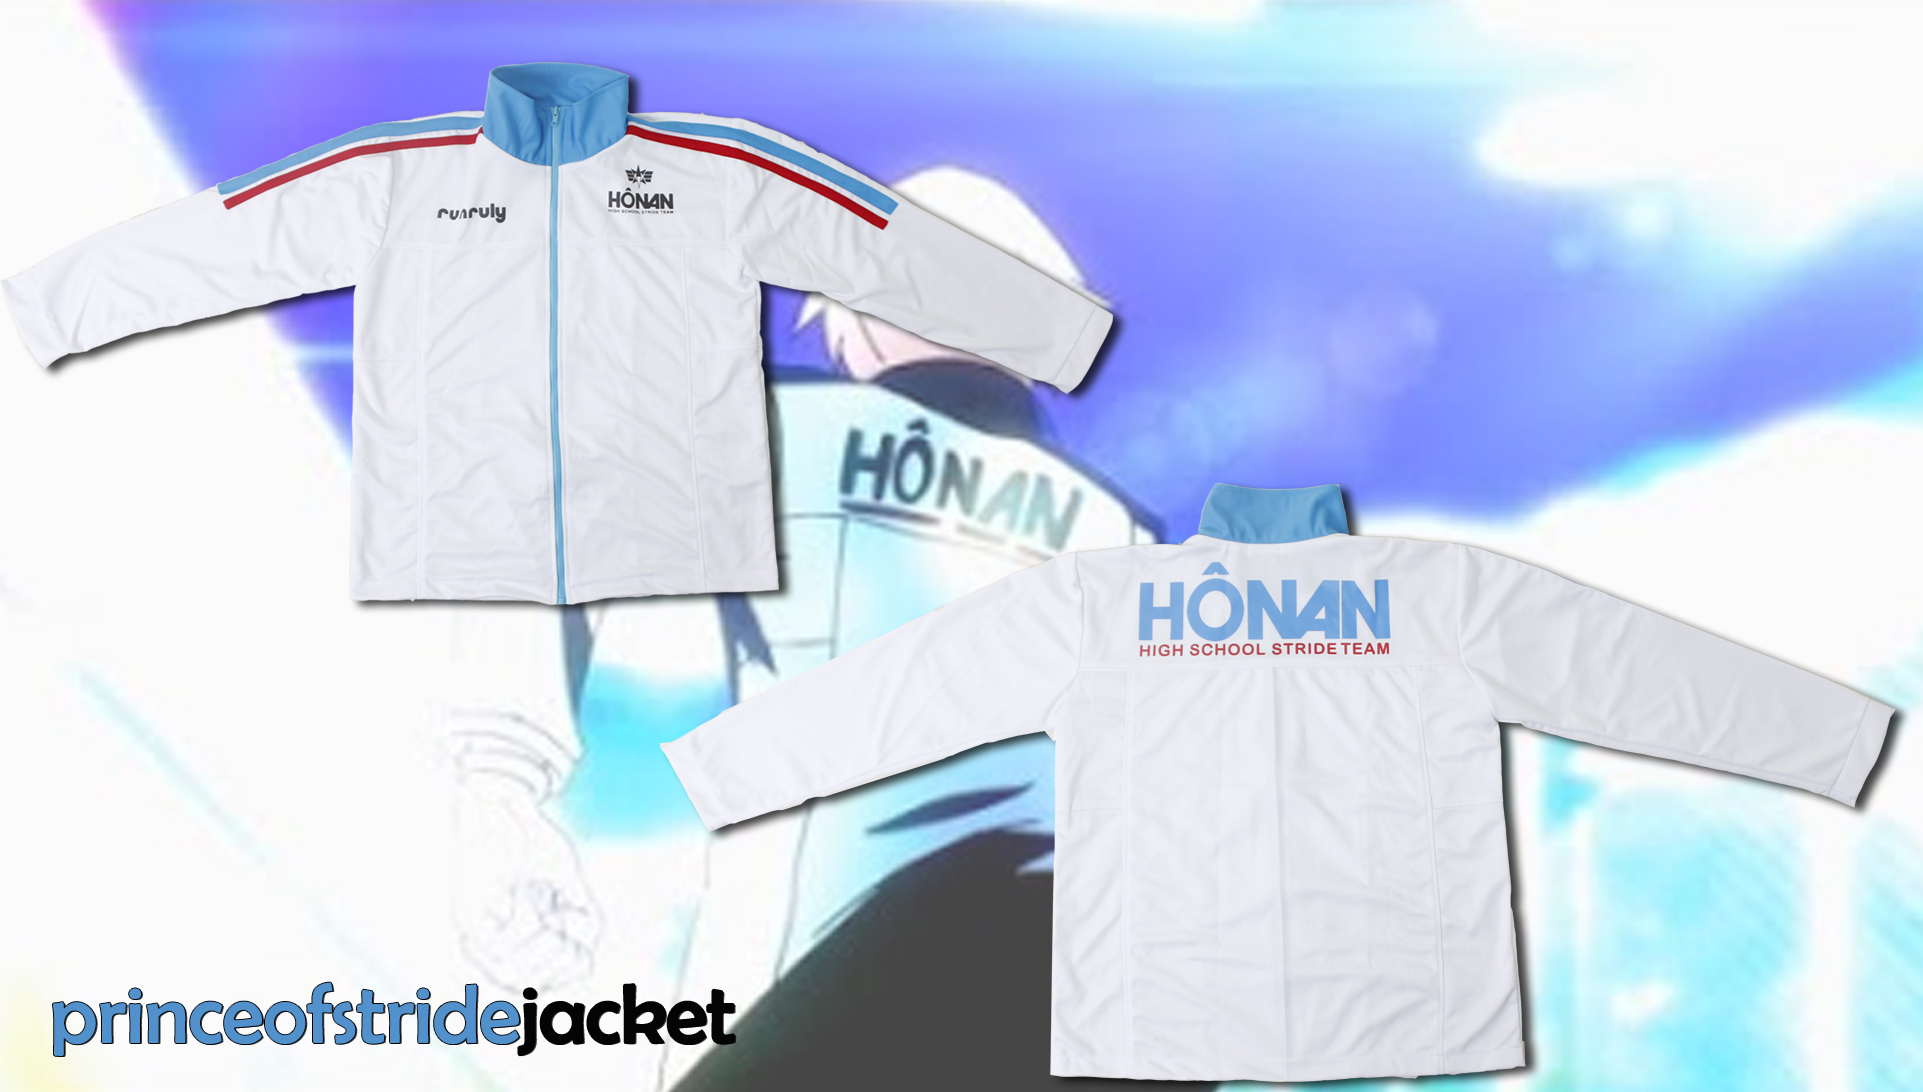 Prince of Stride Jacket